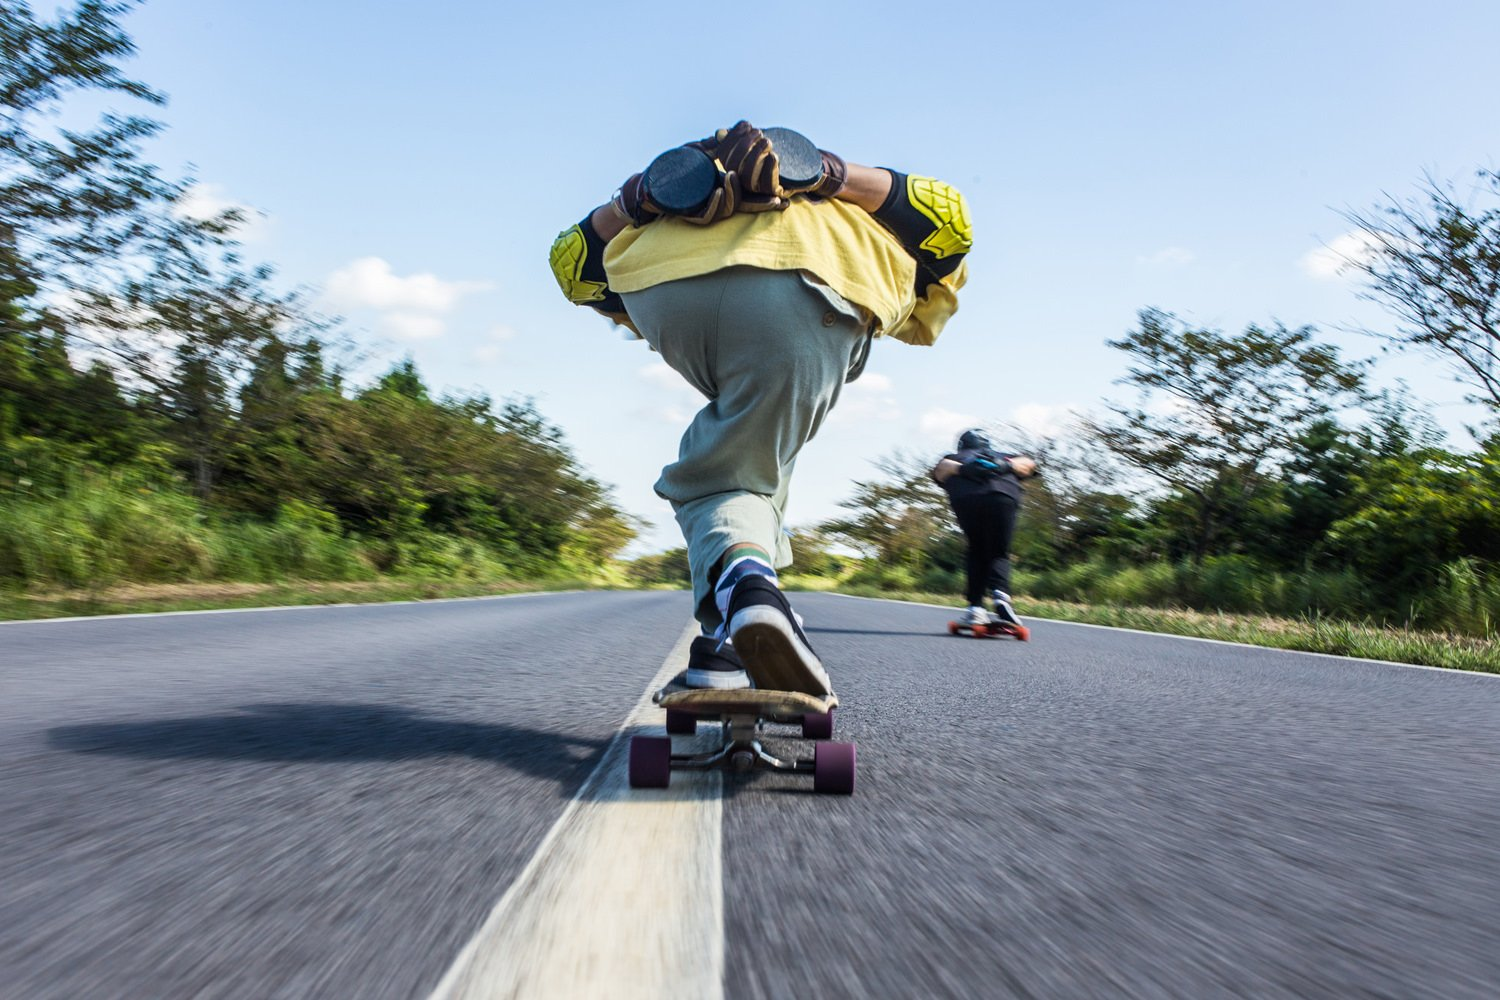 G-Form Protective Gear - Knee Pads - Elbow Pads - Crash Shorts - Downhill Skateboarding